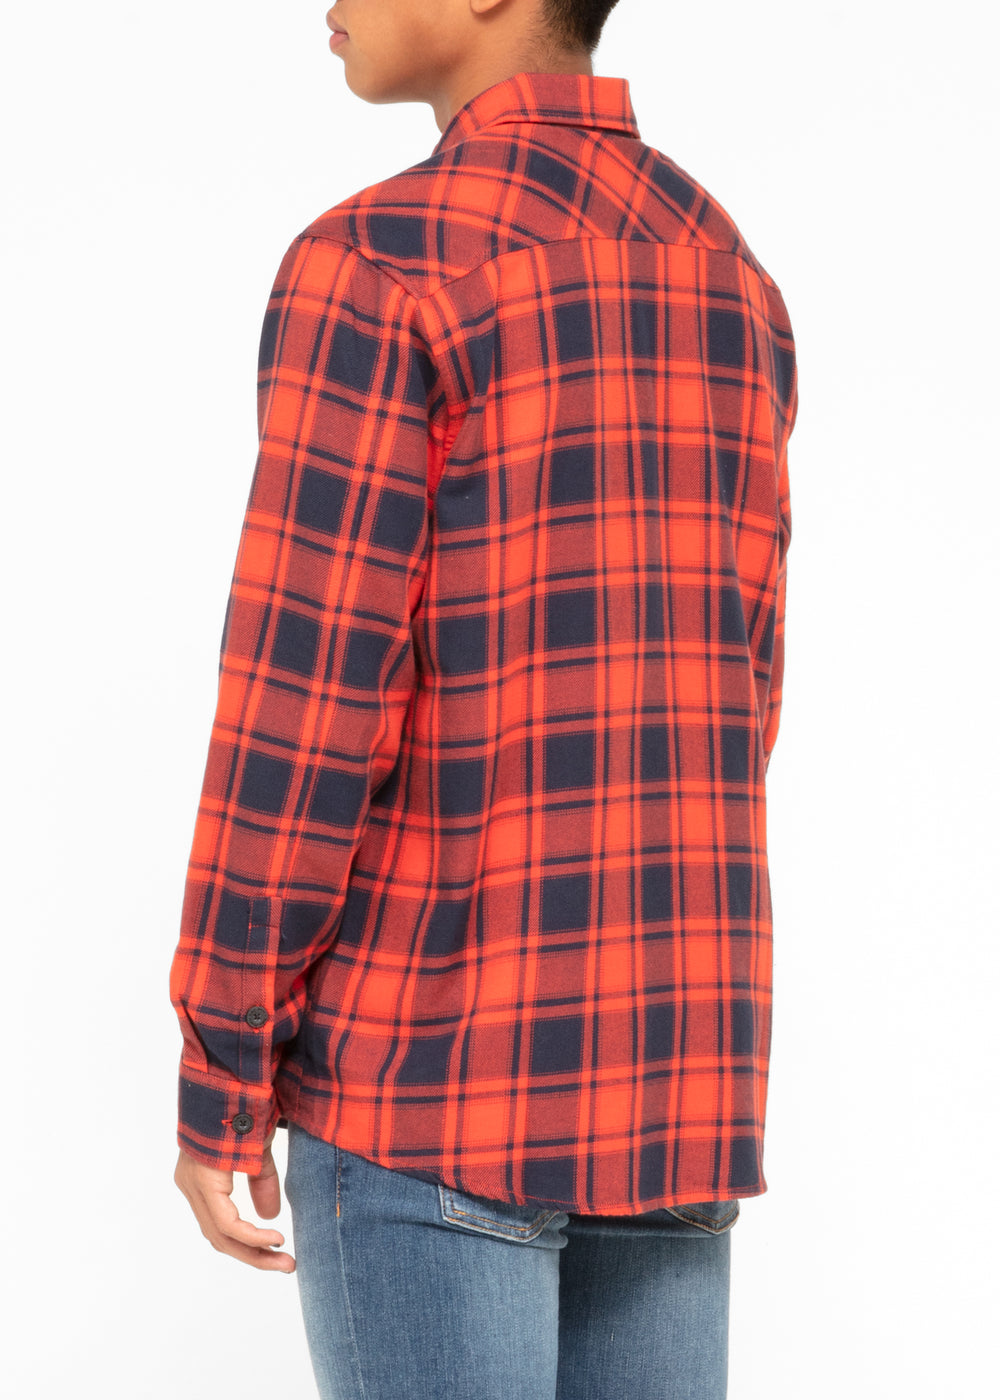 nudie-jeans-co-sten-flannel-shirt-140615-red-blk-4